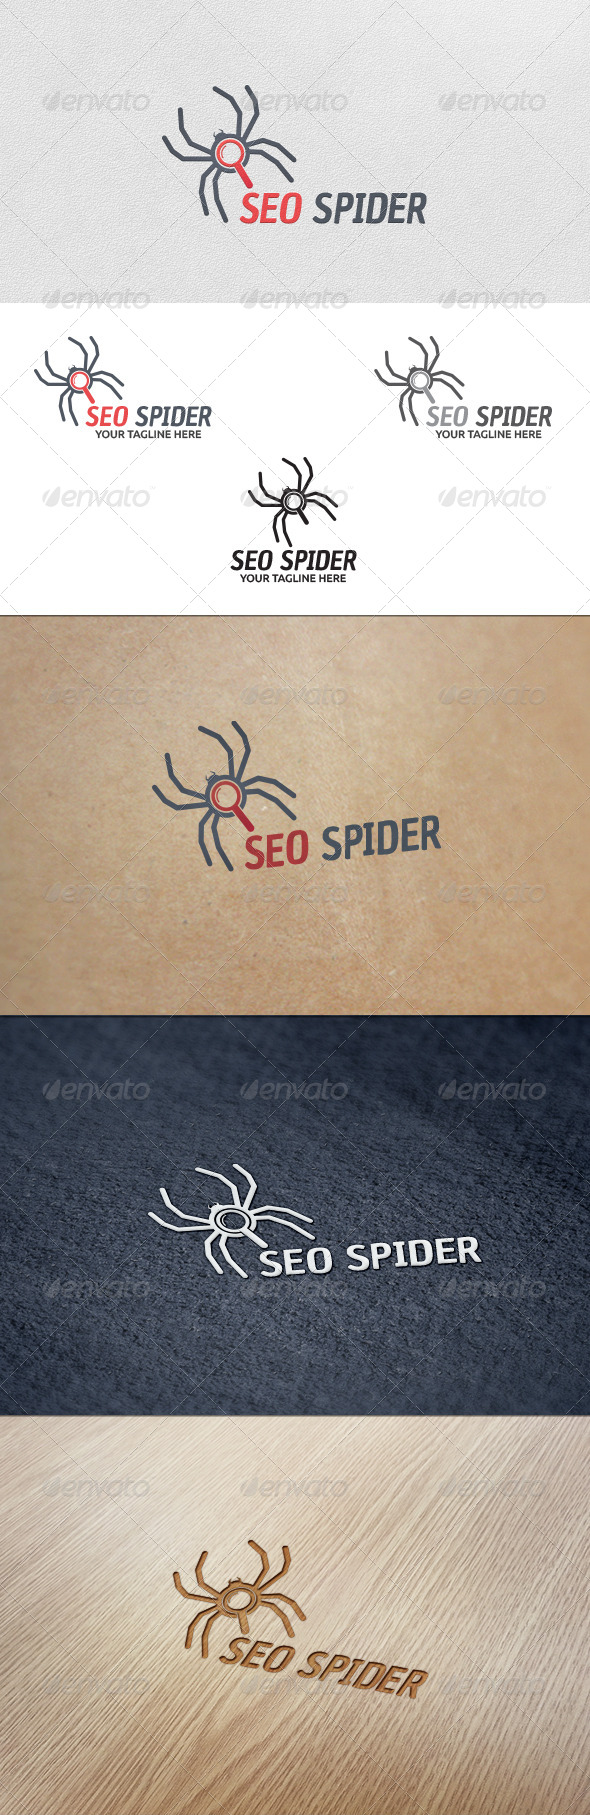 GraphicRiver SEO Spider Logo Template 5663042